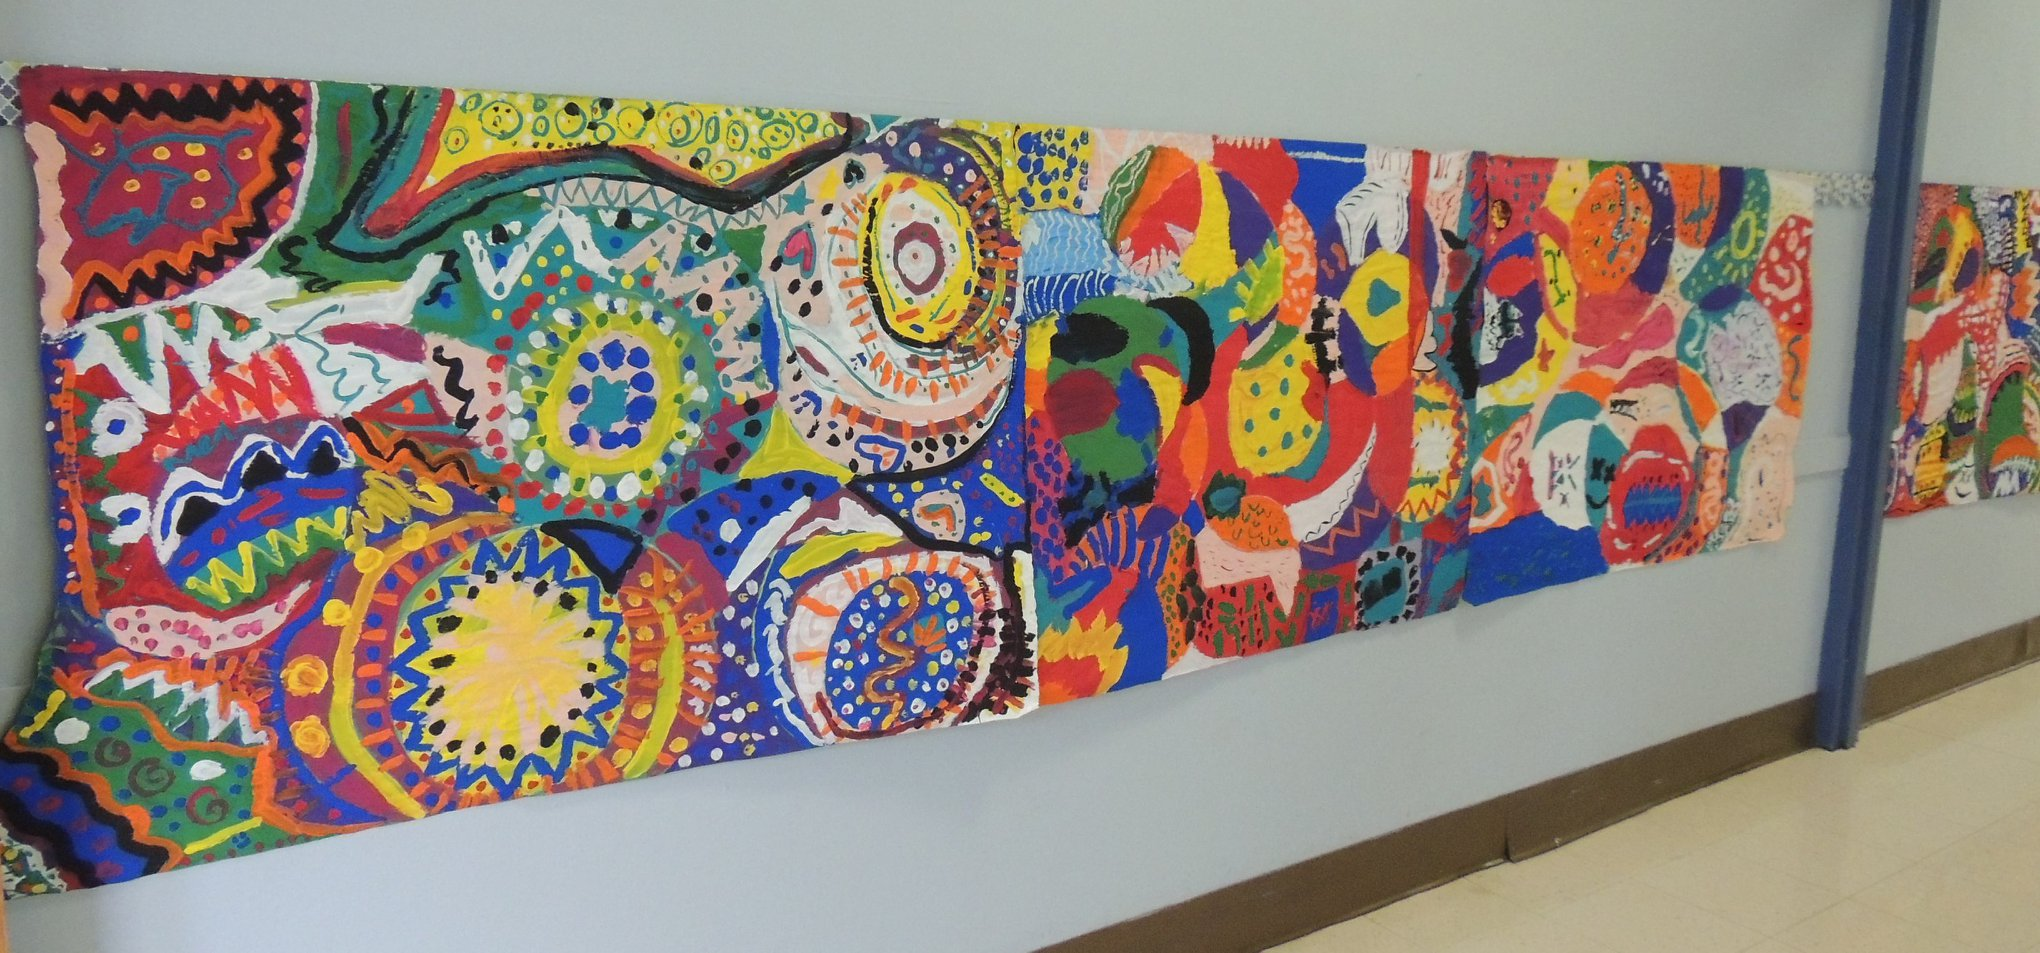 LH 2nd Graders Build a Community through Art